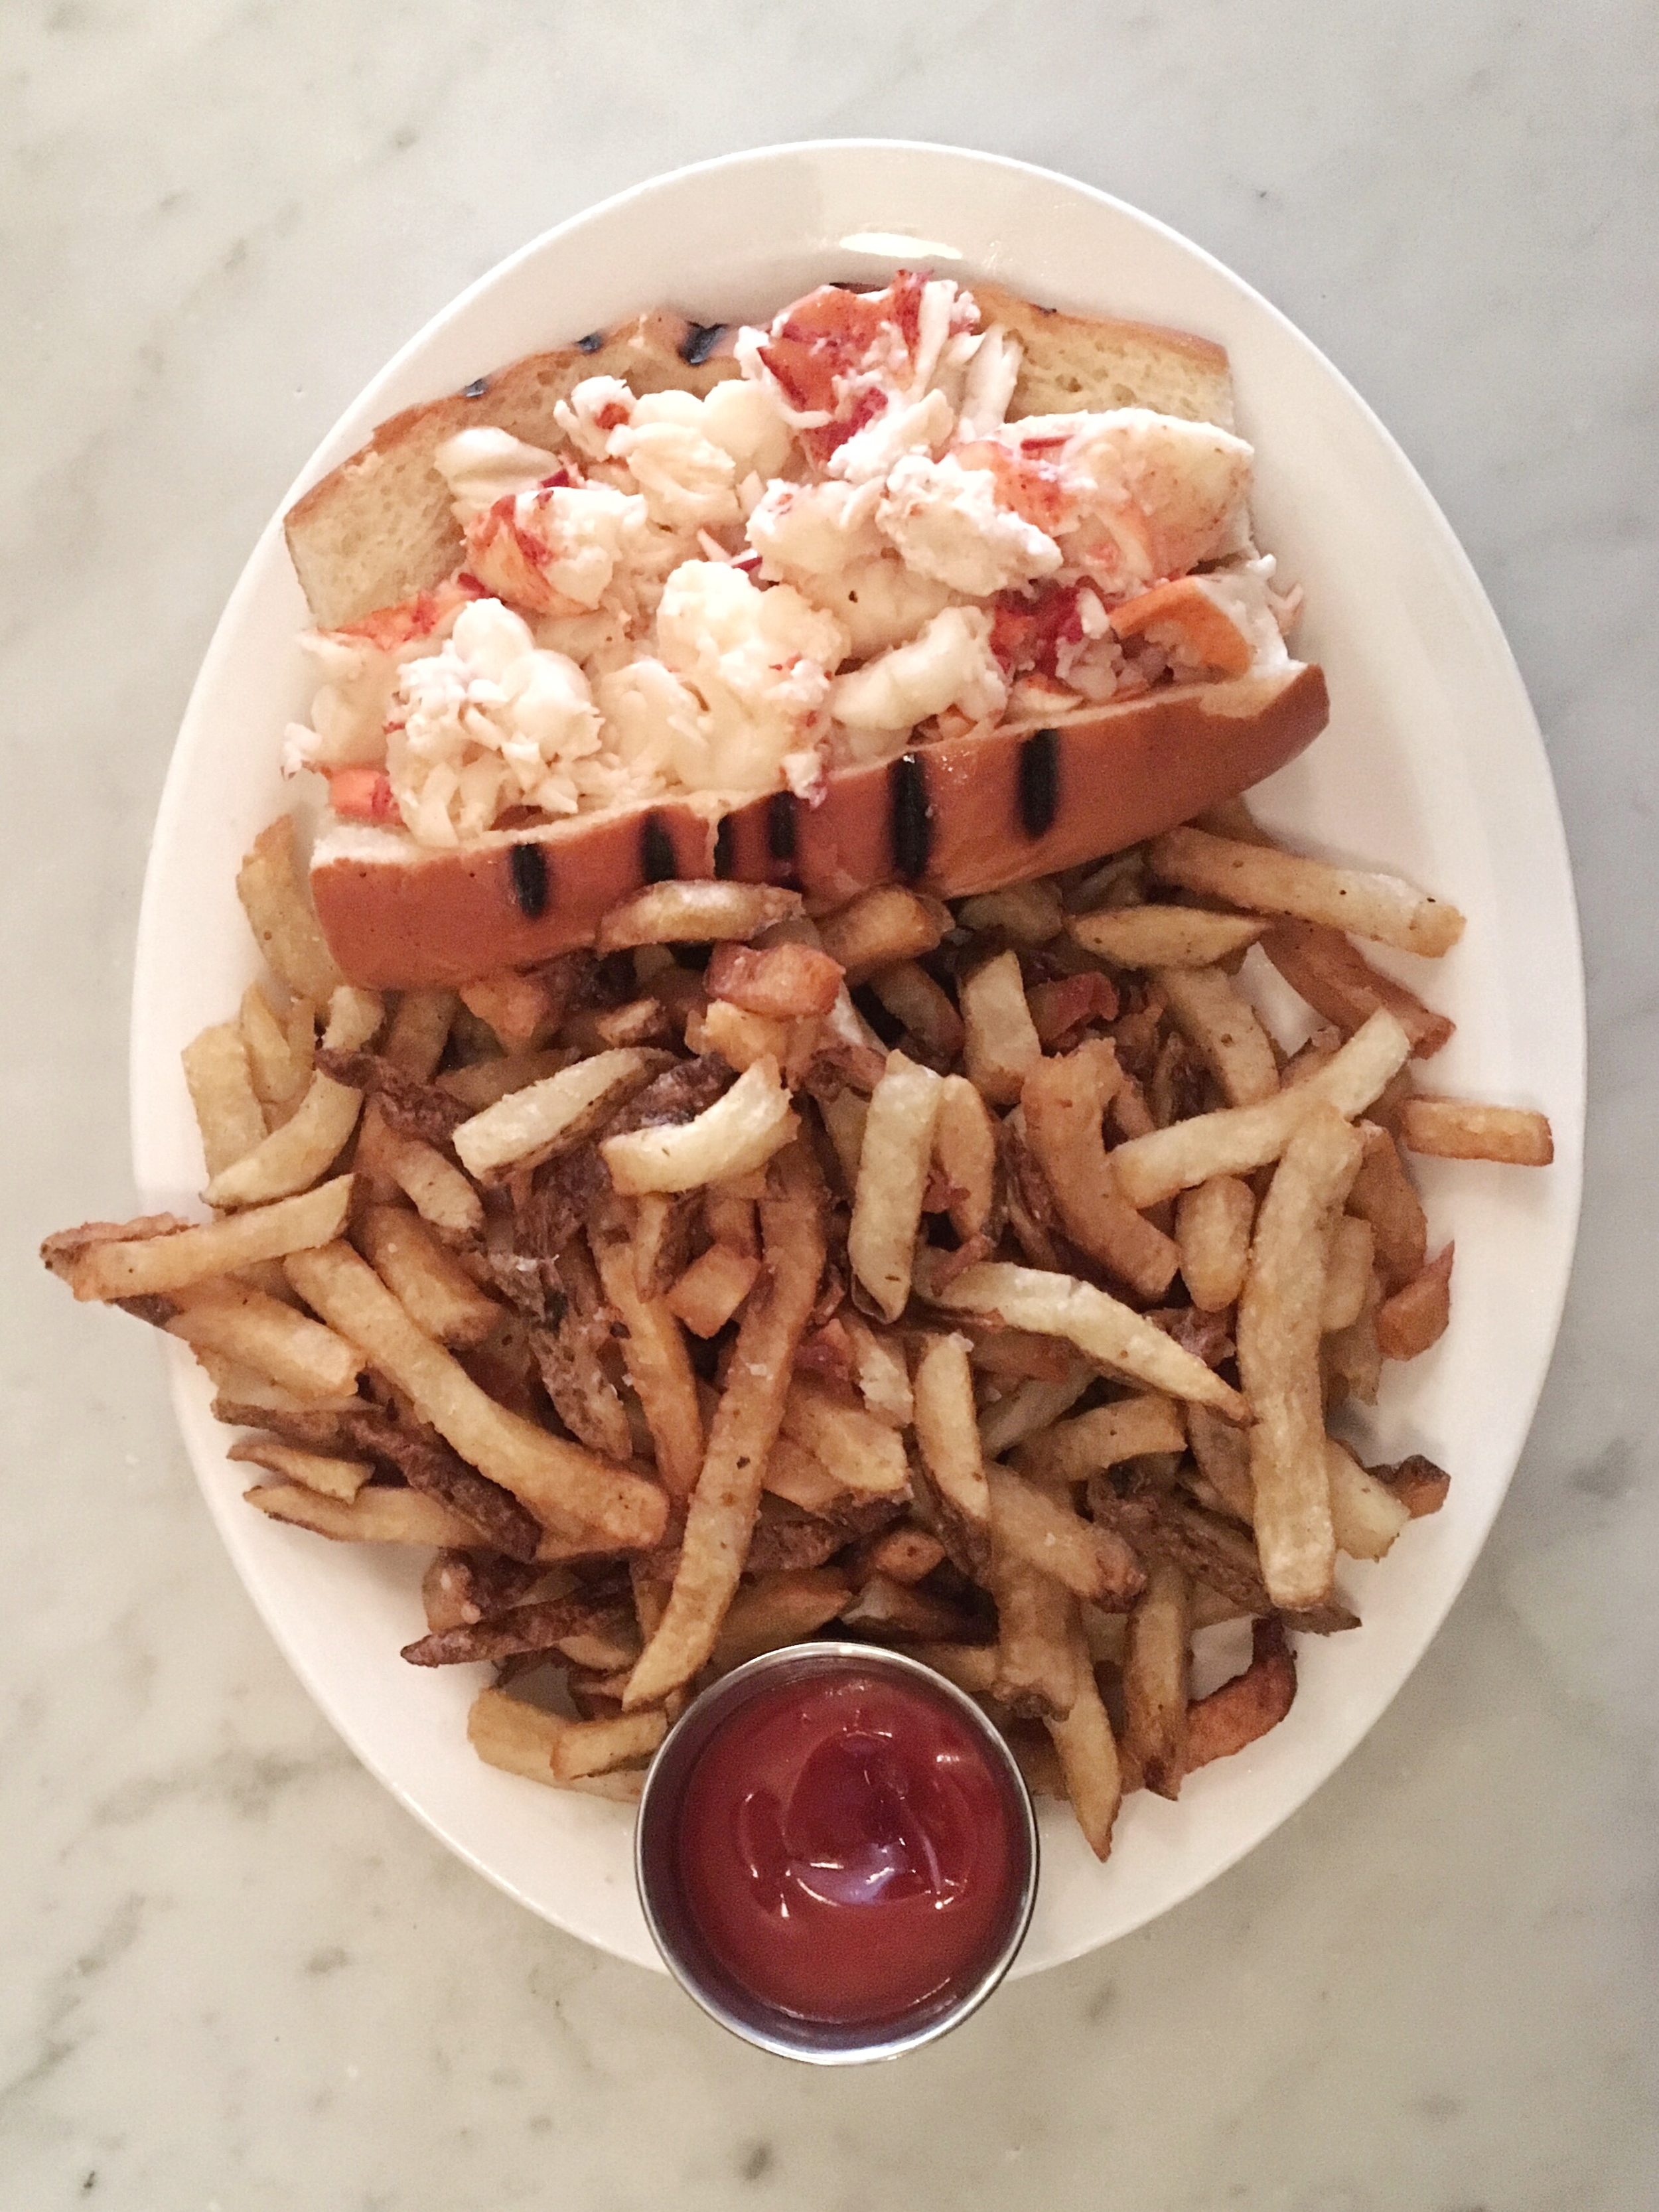 Hot lobster roll with butter and enough fries to feed the whole North End. It lived up to the hype, but we need to go back to try it cold with mayo, for science's sake.